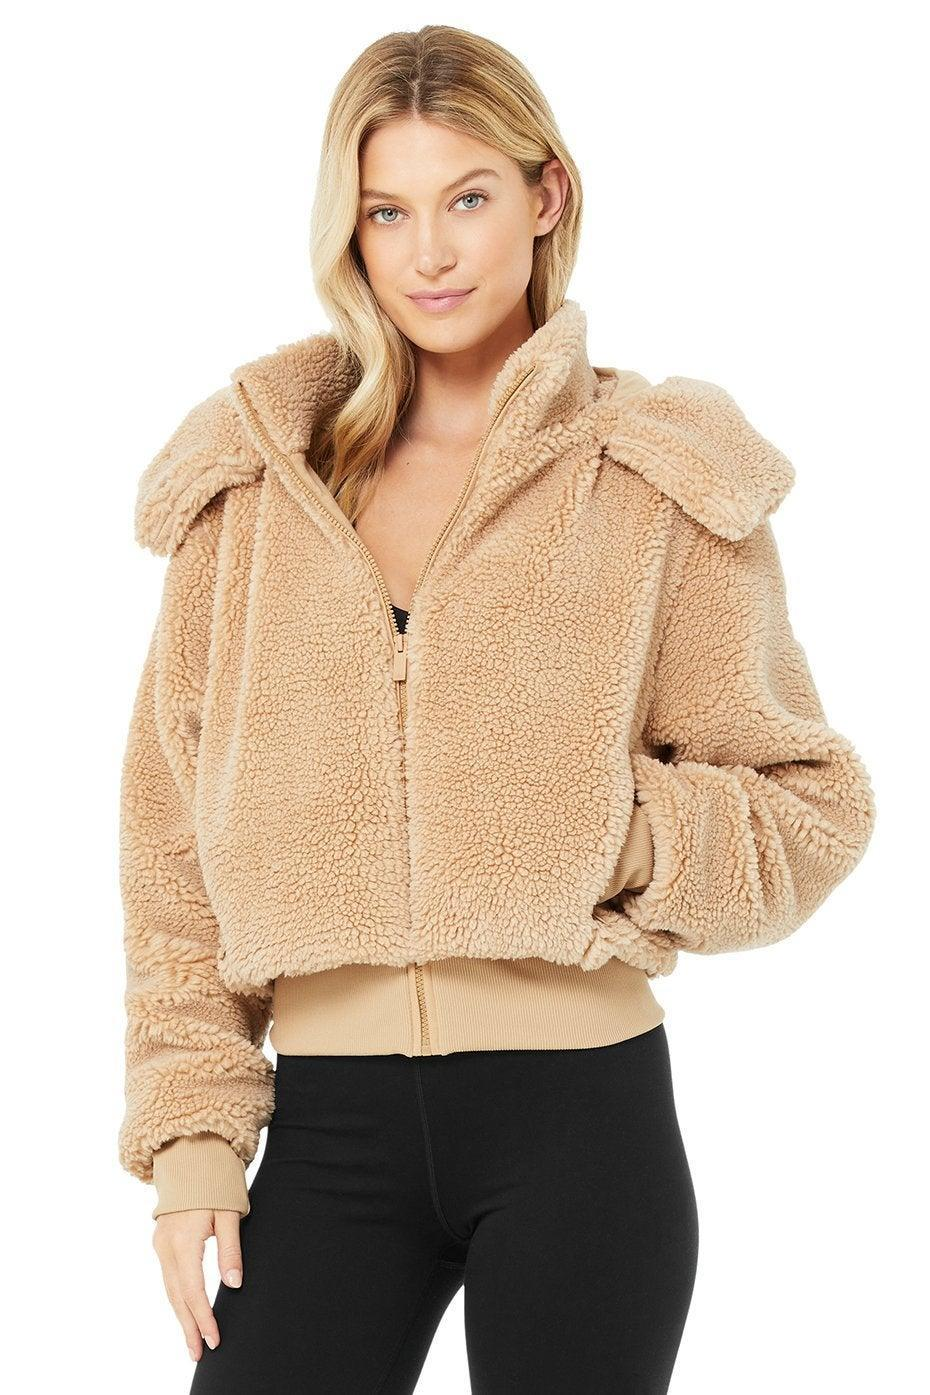 """<br><br><strong>Alo Yoga</strong> Foxy Sherpa Jacket, $, available at <a href=""""https://go.skimresources.com/?id=30283X879131&url=https%3A%2F%2Fwww.aloyoga.com%2Fproducts%2Fw4313r-foxy-sherpa-jacket-camel%3Fvariant%3D31884981436534"""" rel=""""nofollow noopener"""" target=""""_blank"""" data-ylk=""""slk:Alo Yoga"""" class=""""link rapid-noclick-resp"""">Alo Yoga</a>"""